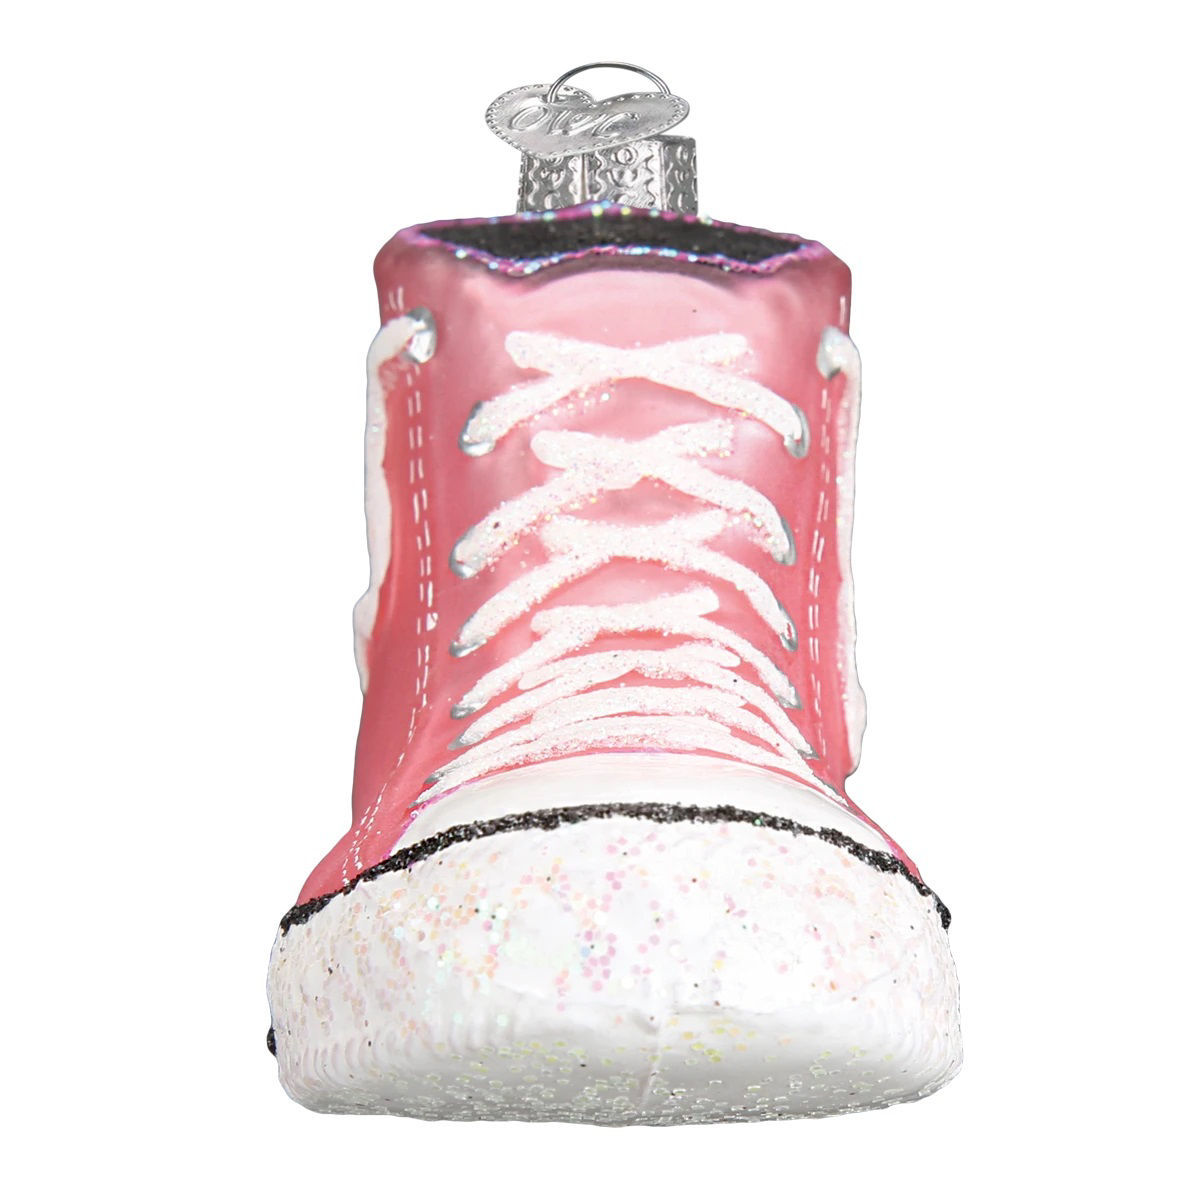 Pink High Top Sneaker Ornament by Old World Christmas